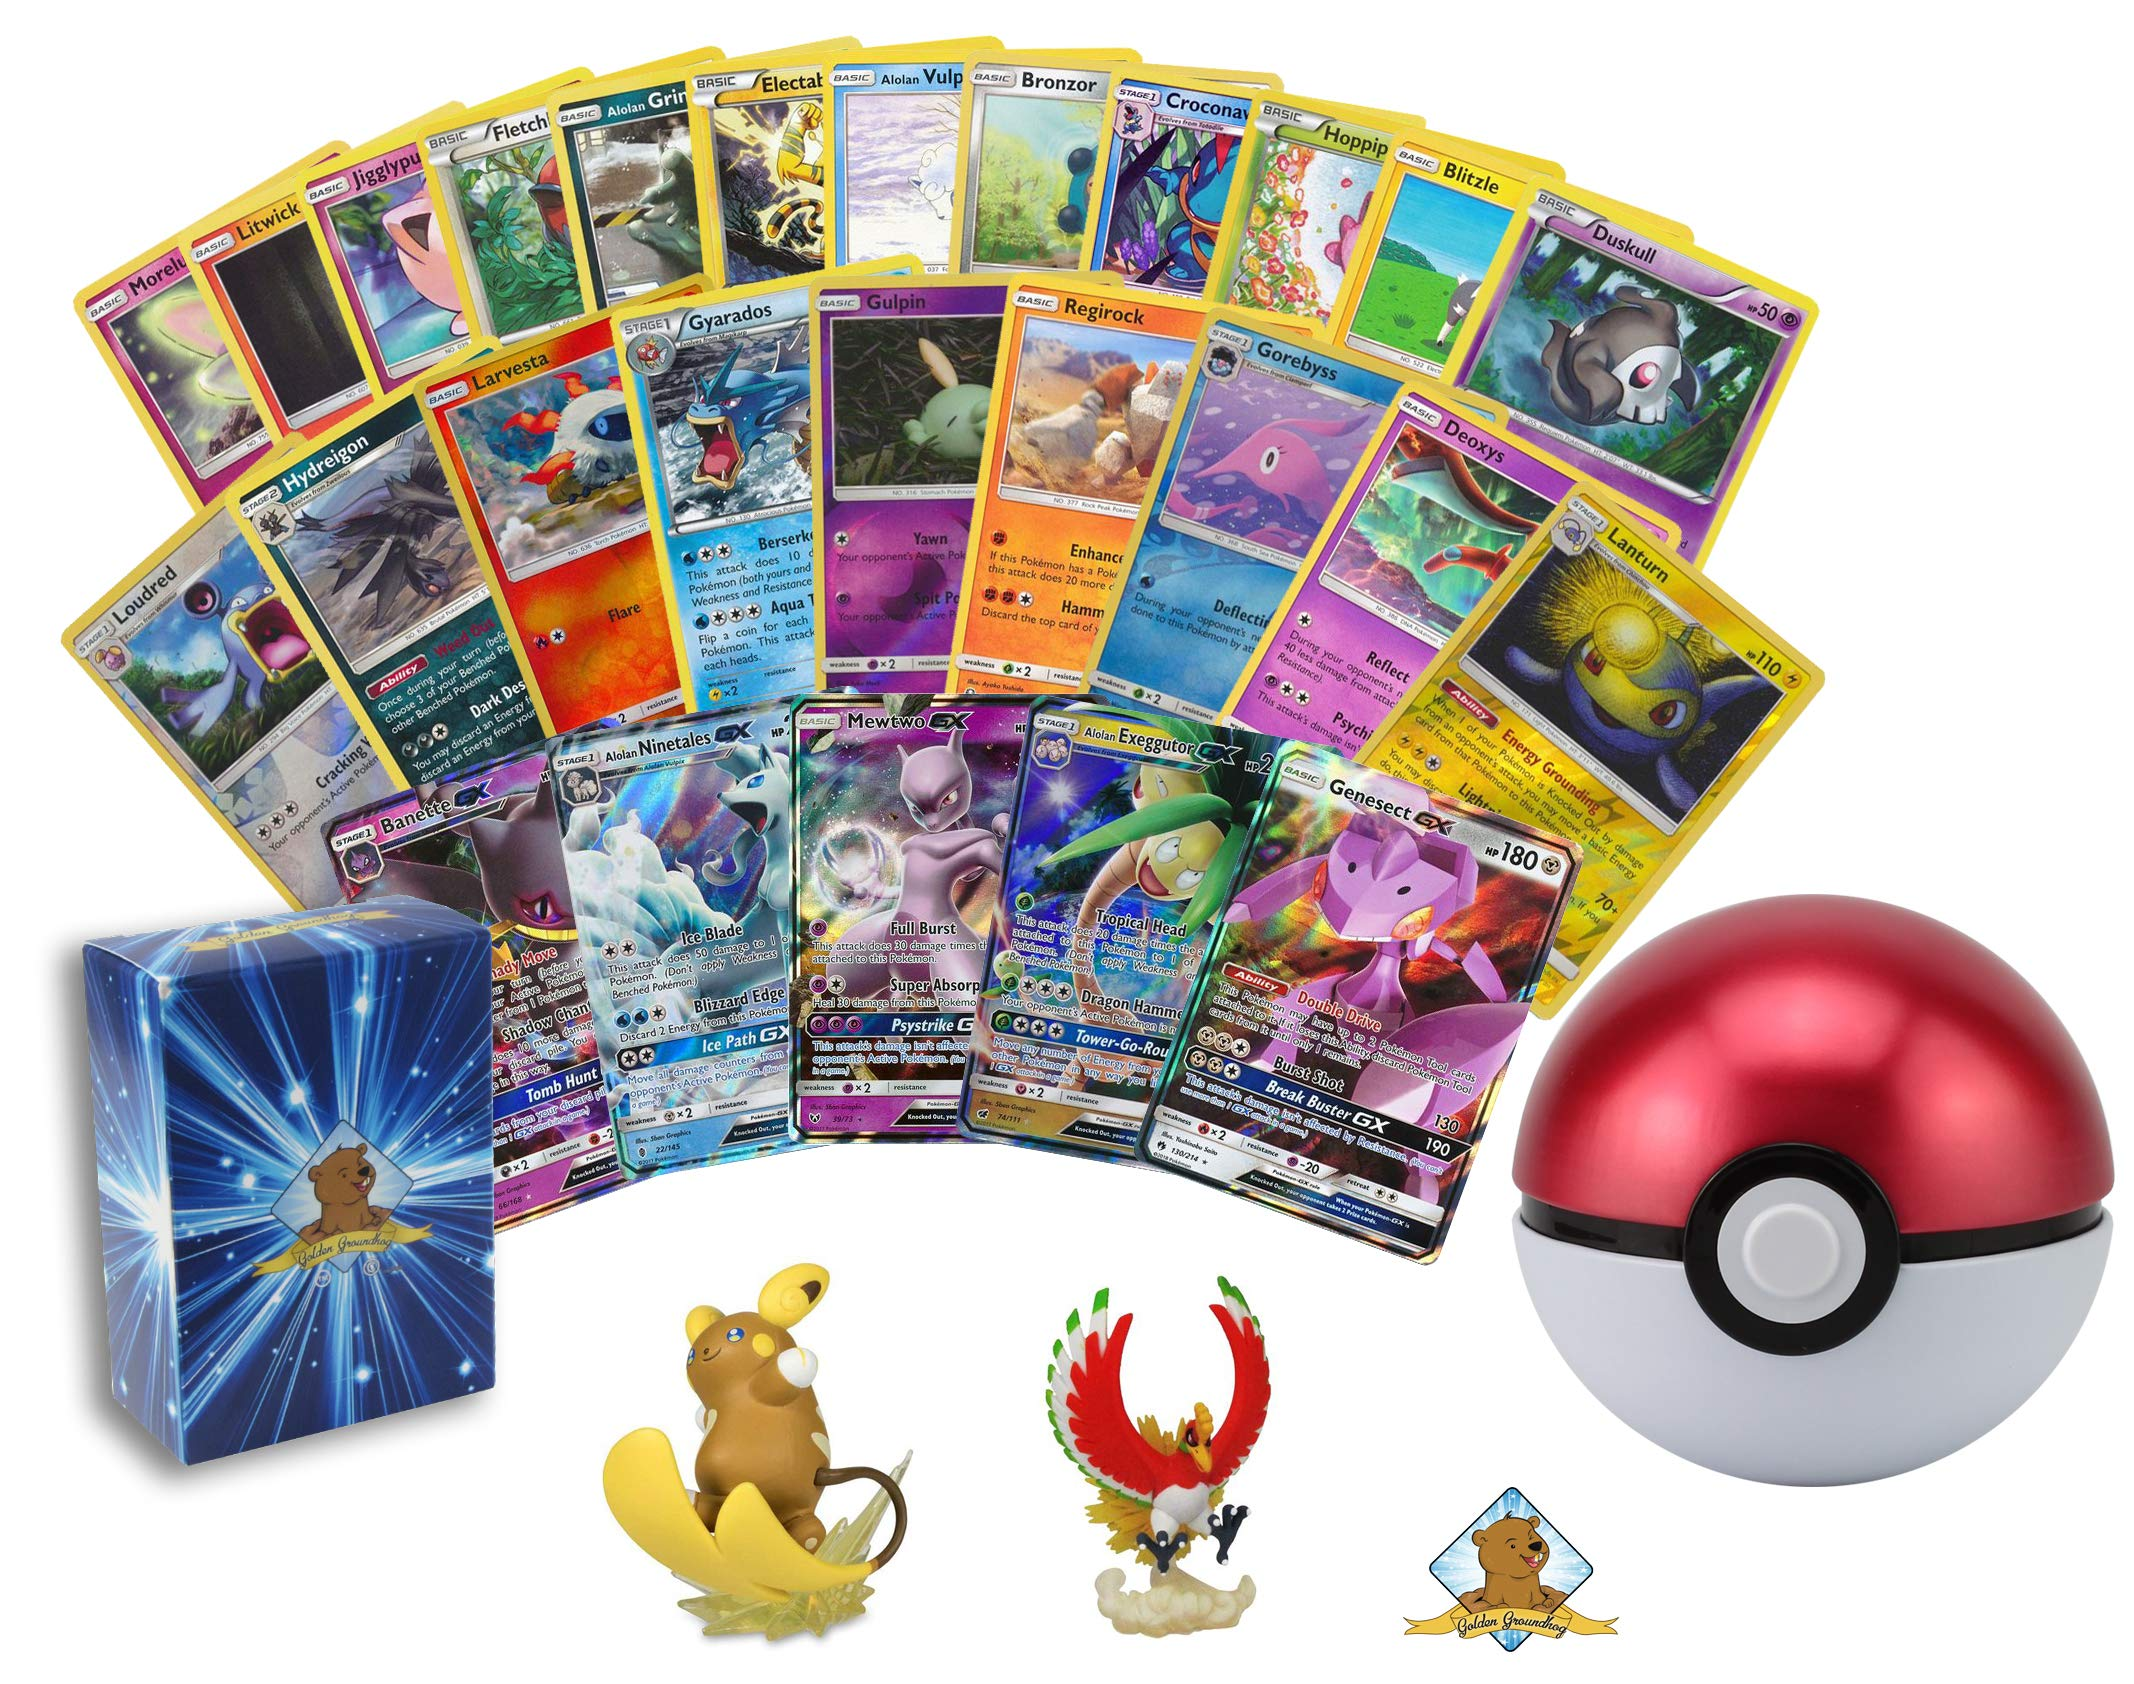 100 Pokemon Cards with 1 GX Ultra Rare - 1 Pokeball Tin with Suprise Pokemon Toy Figure Inside! Rares Foils! Includes Golden Groundhog Deck Box!